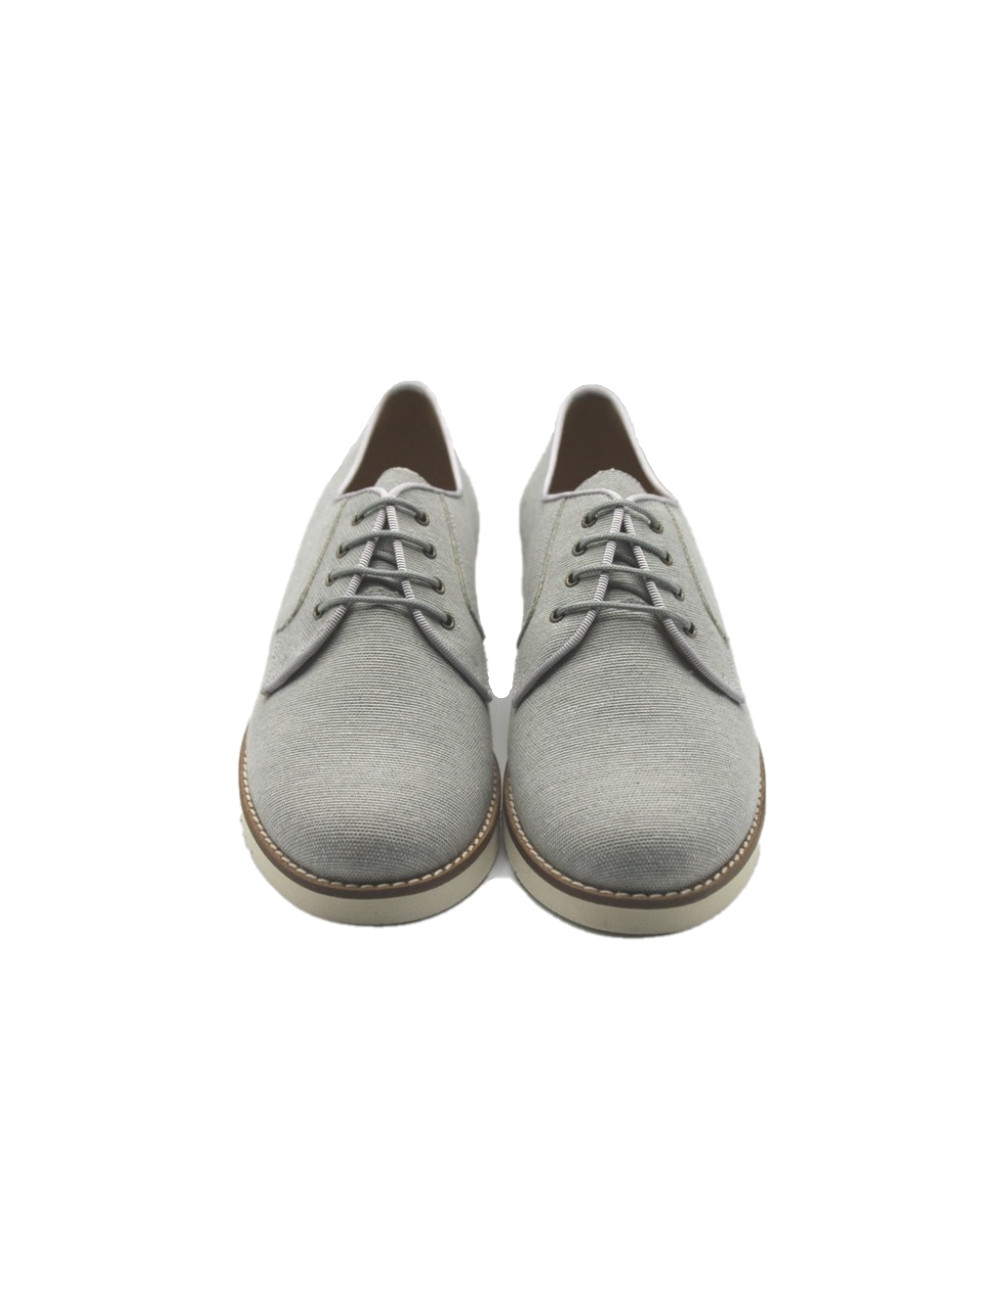 Blucher ceremonia lino gris